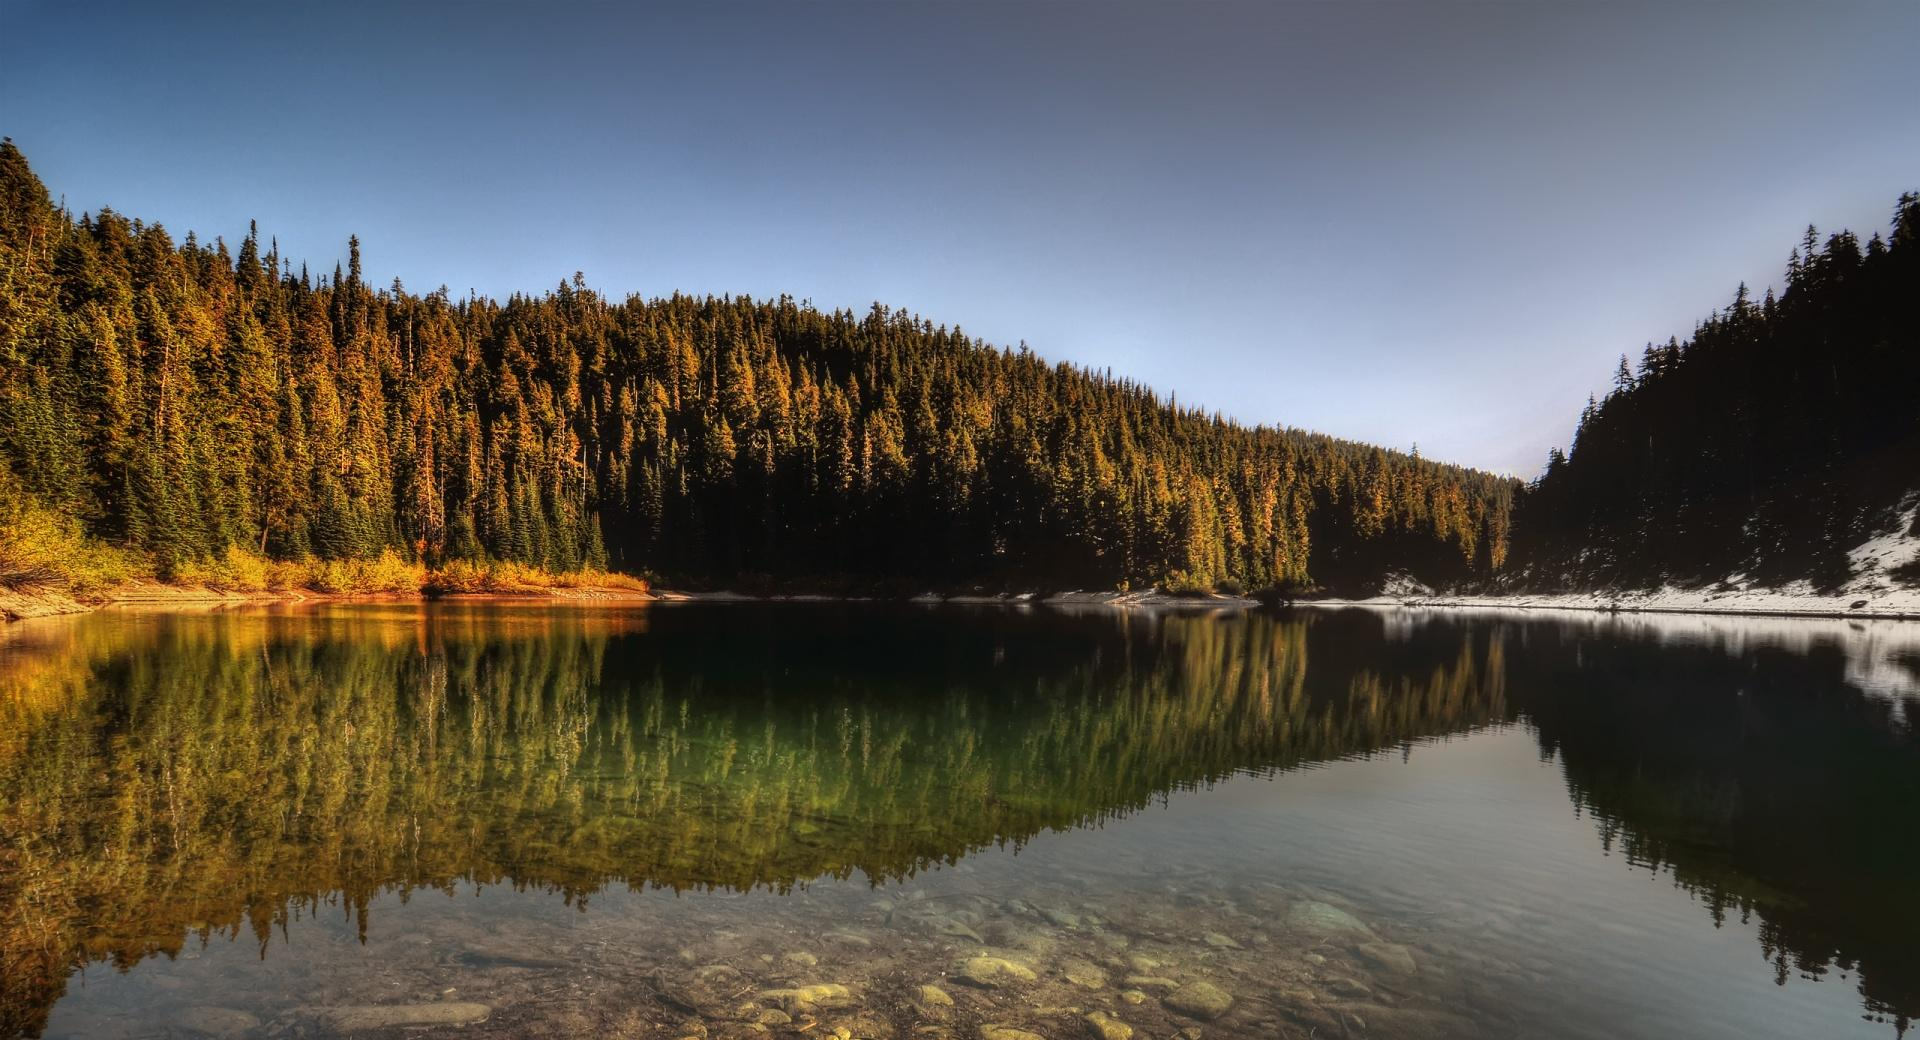 Forest Lake Reflection wallpapers HD quality